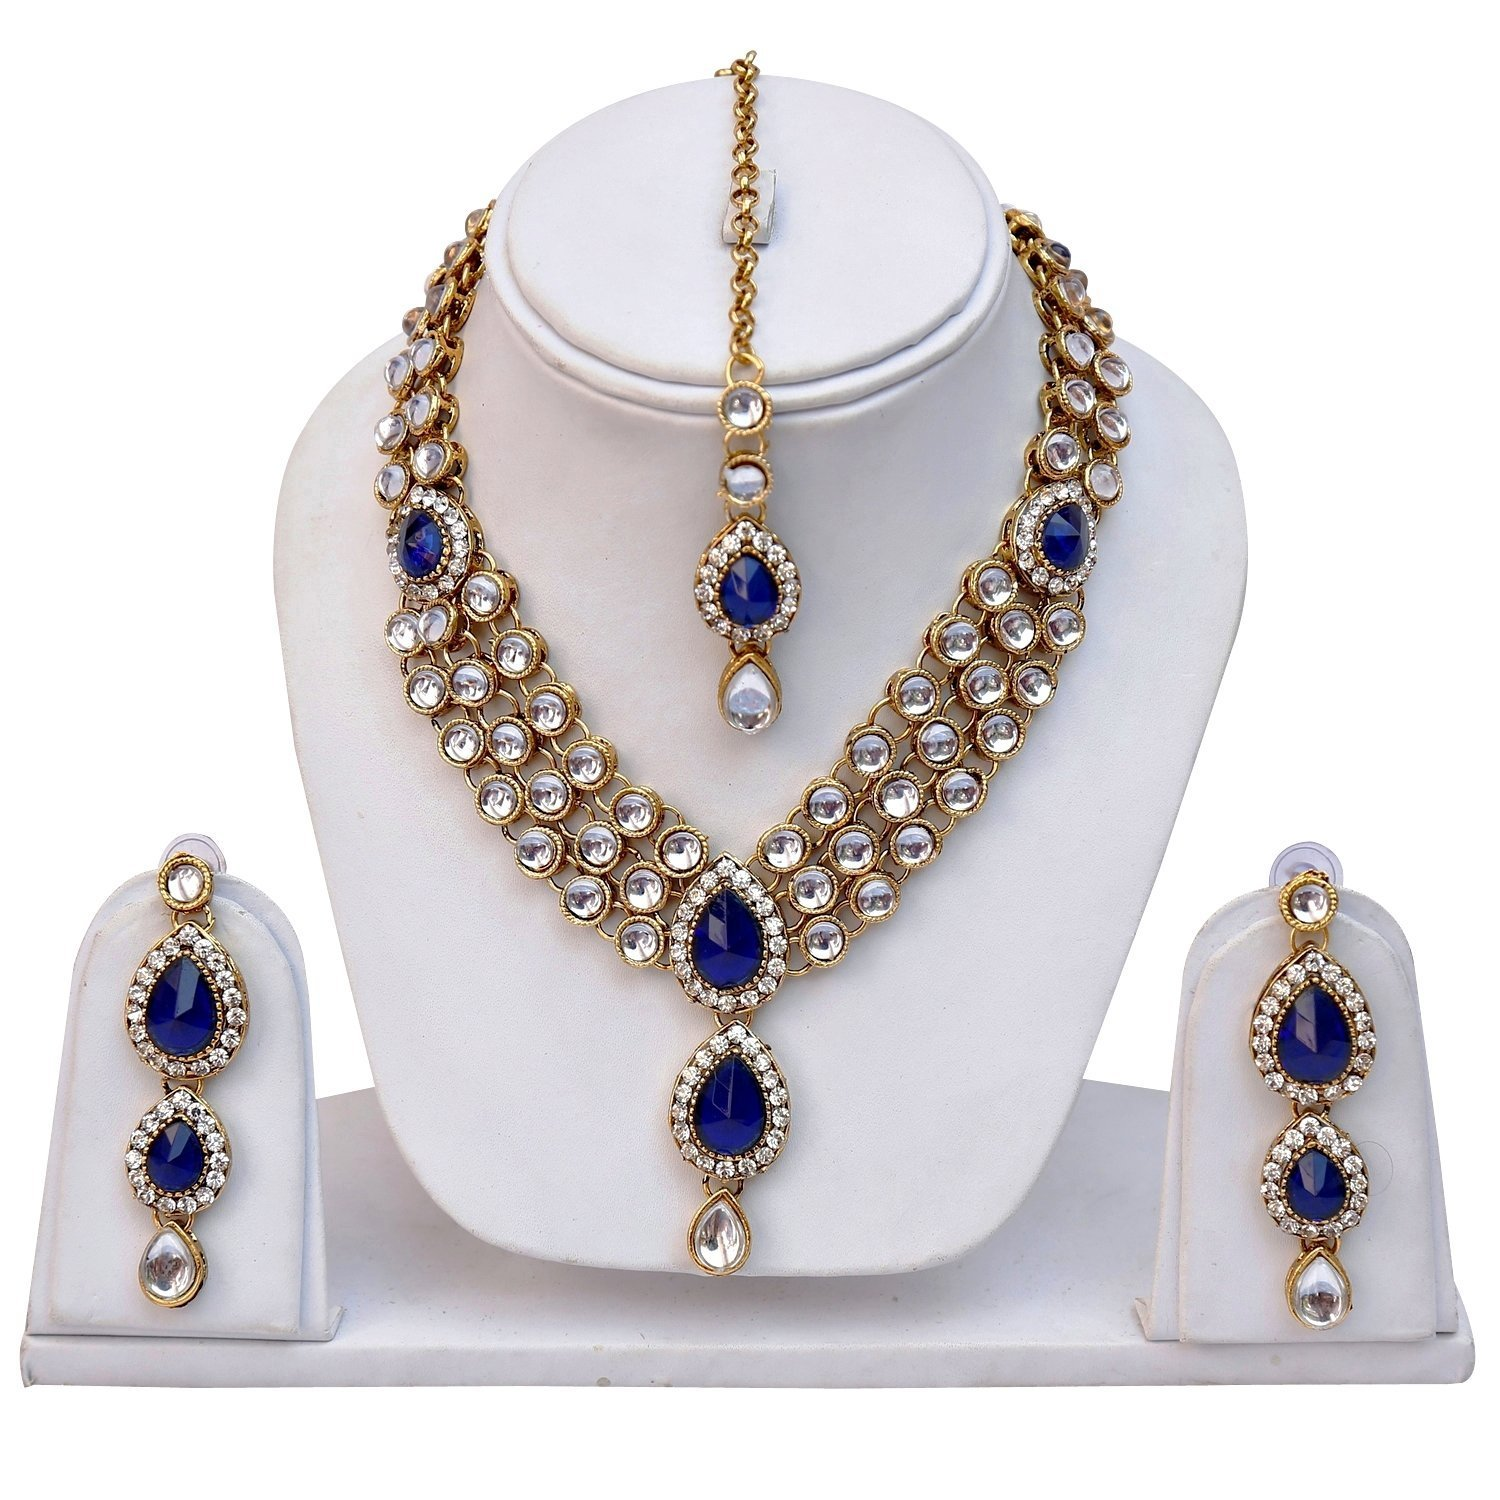 at women necklace online buy b sale india sukkhi low set jewellery prices golden in womens shop for